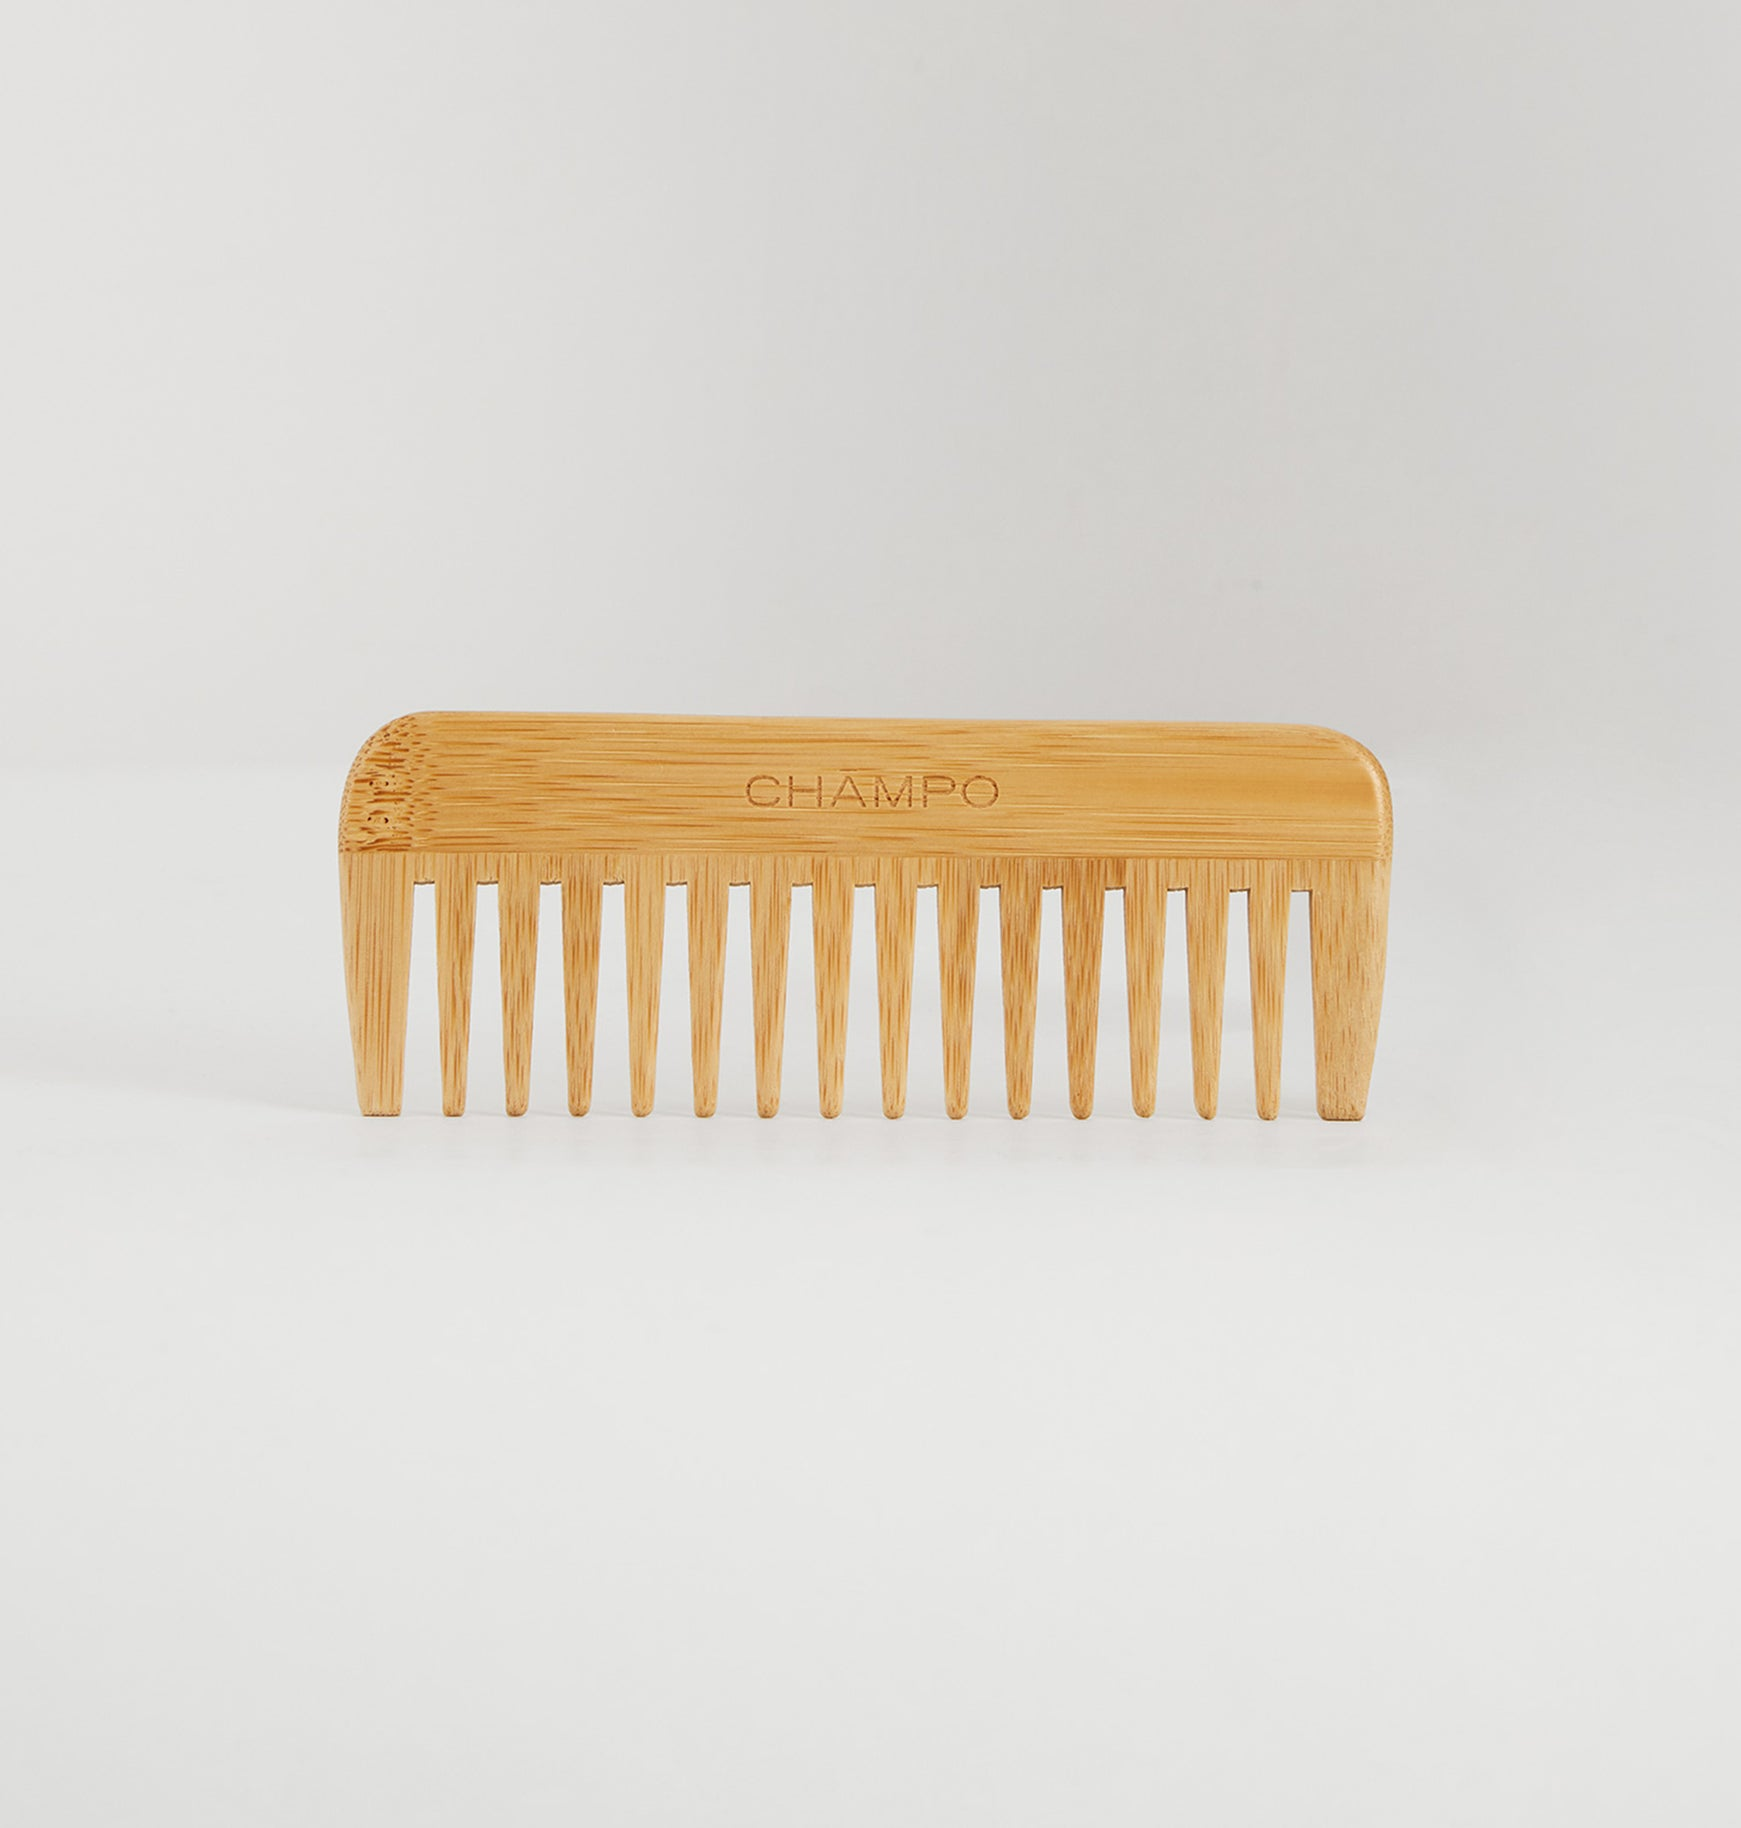 Elevating hair's condition with our Conditioner comb